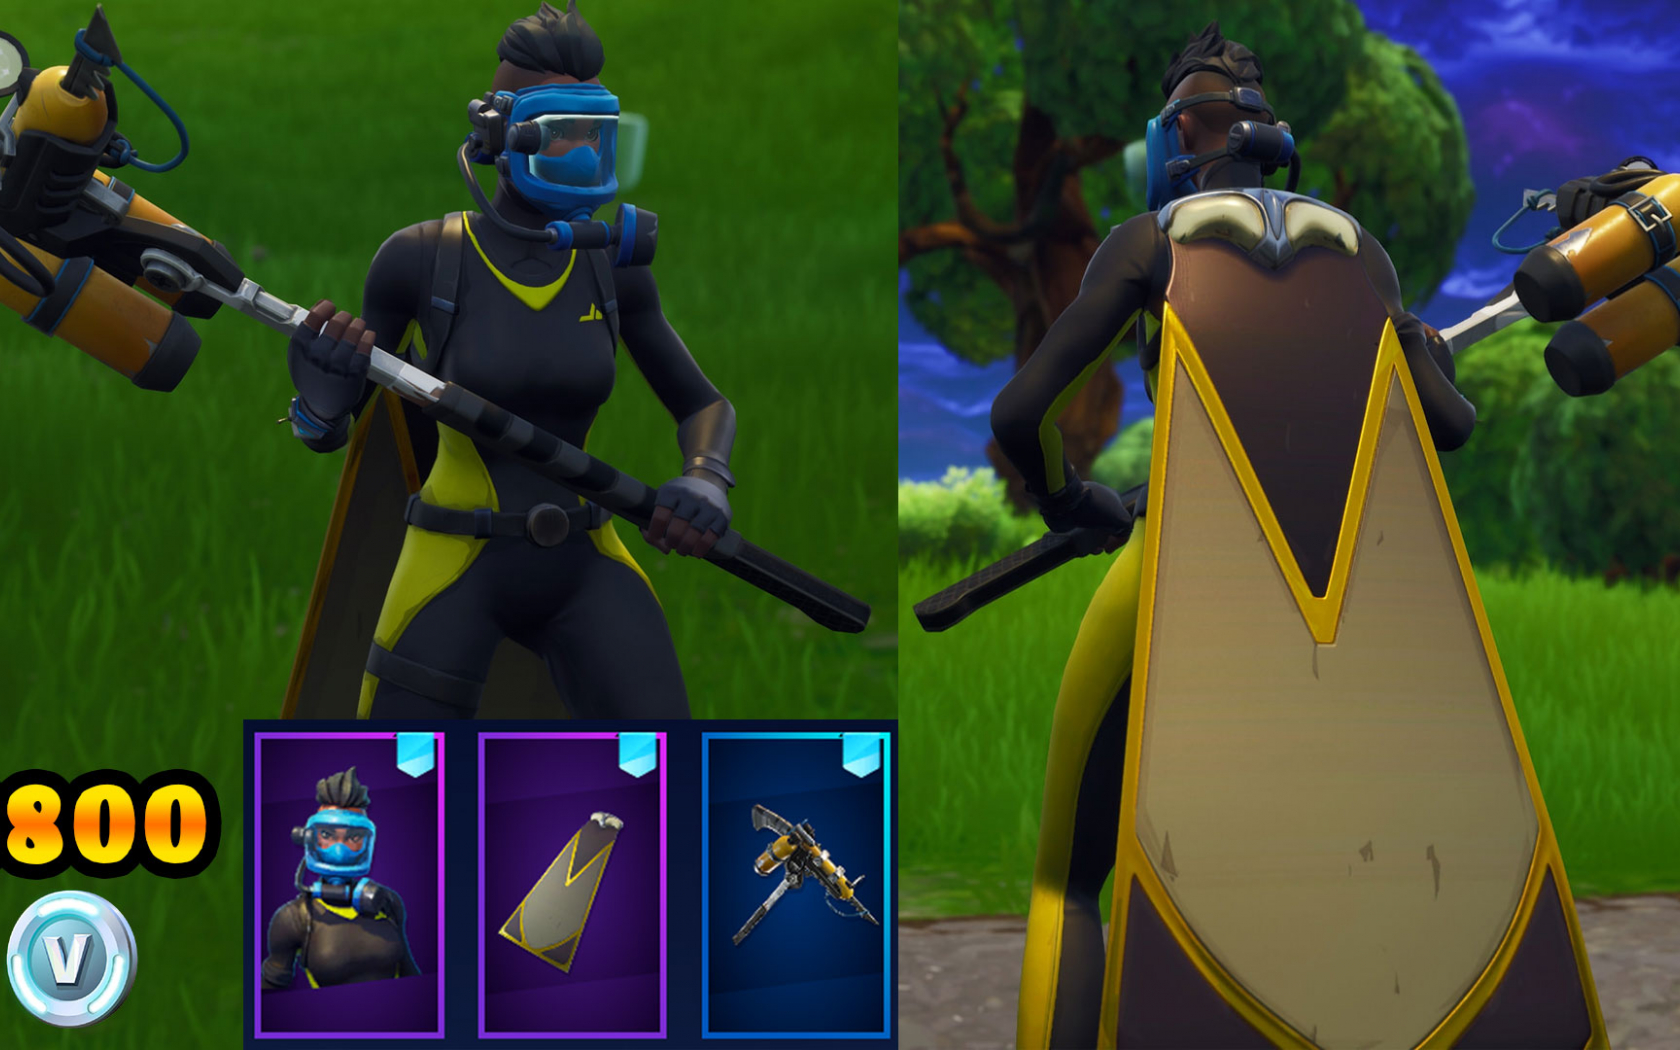 Fortnite Cape free download reef ranger venturion cape harpoon axe 3800 v